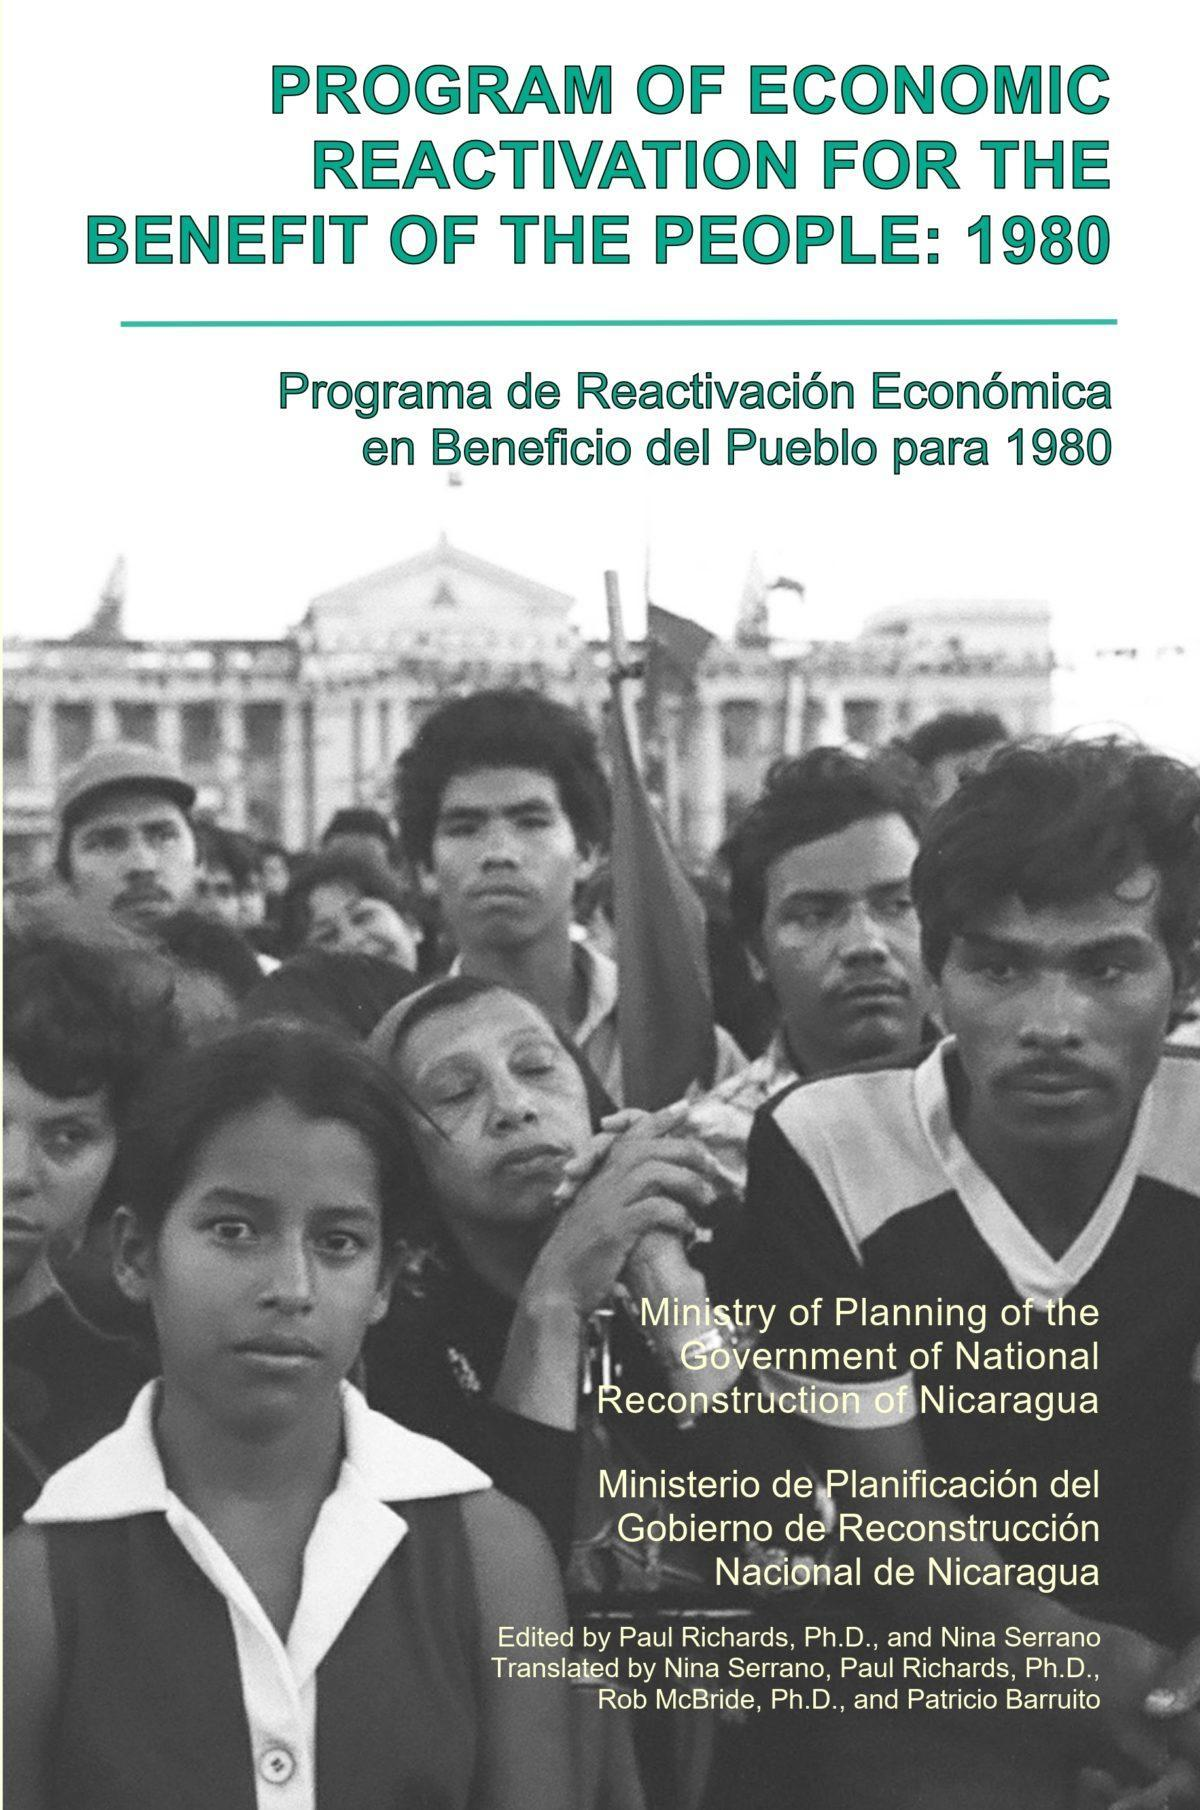 Book Reviews of the Program of Economic Reactivation